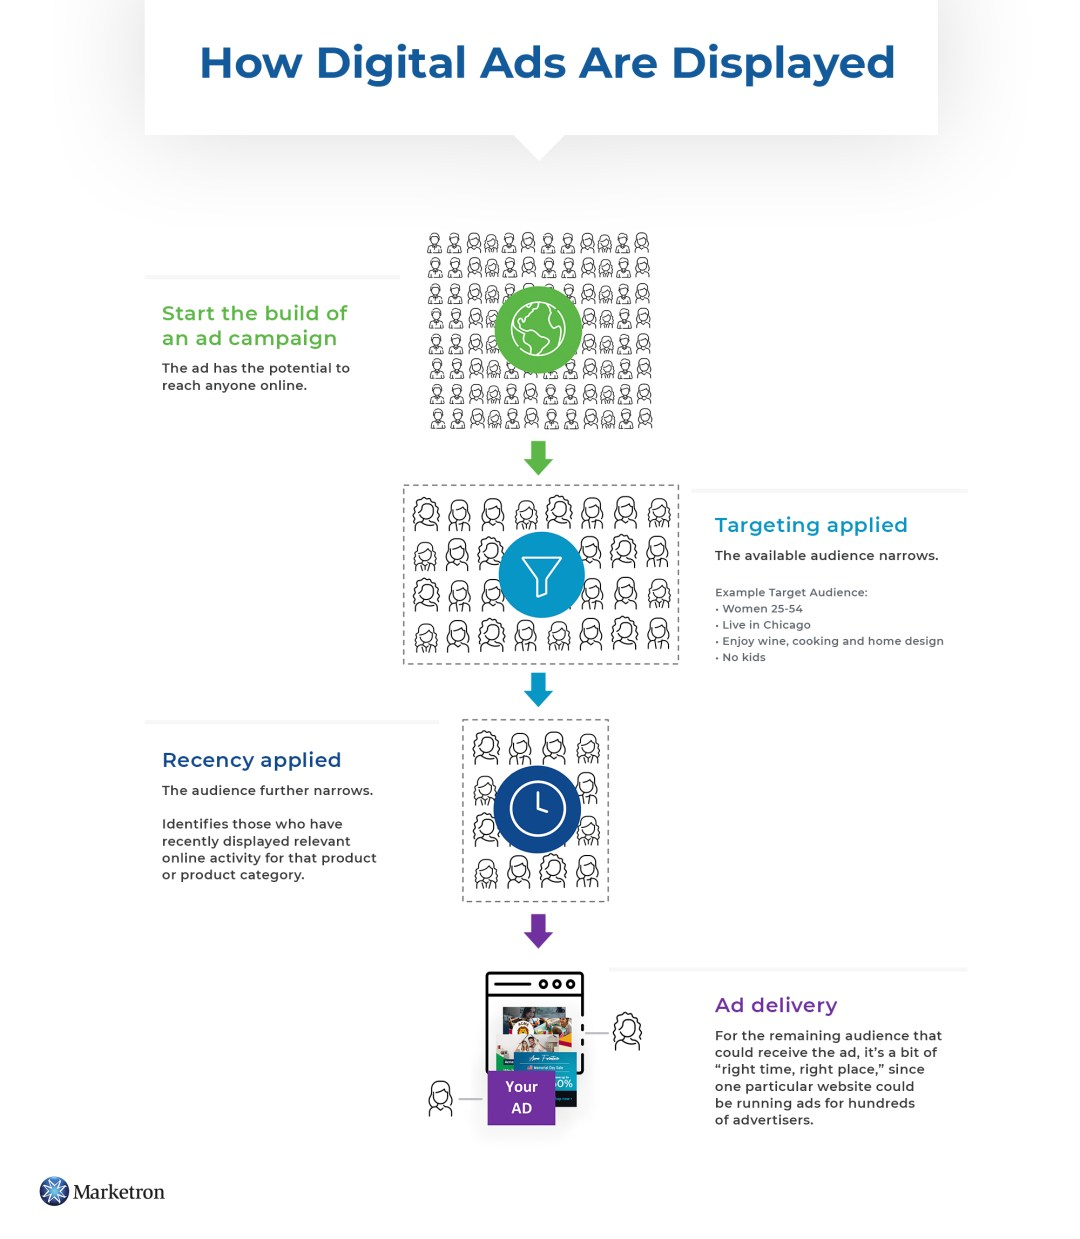 How Digital Ads Are Displayed Infographic